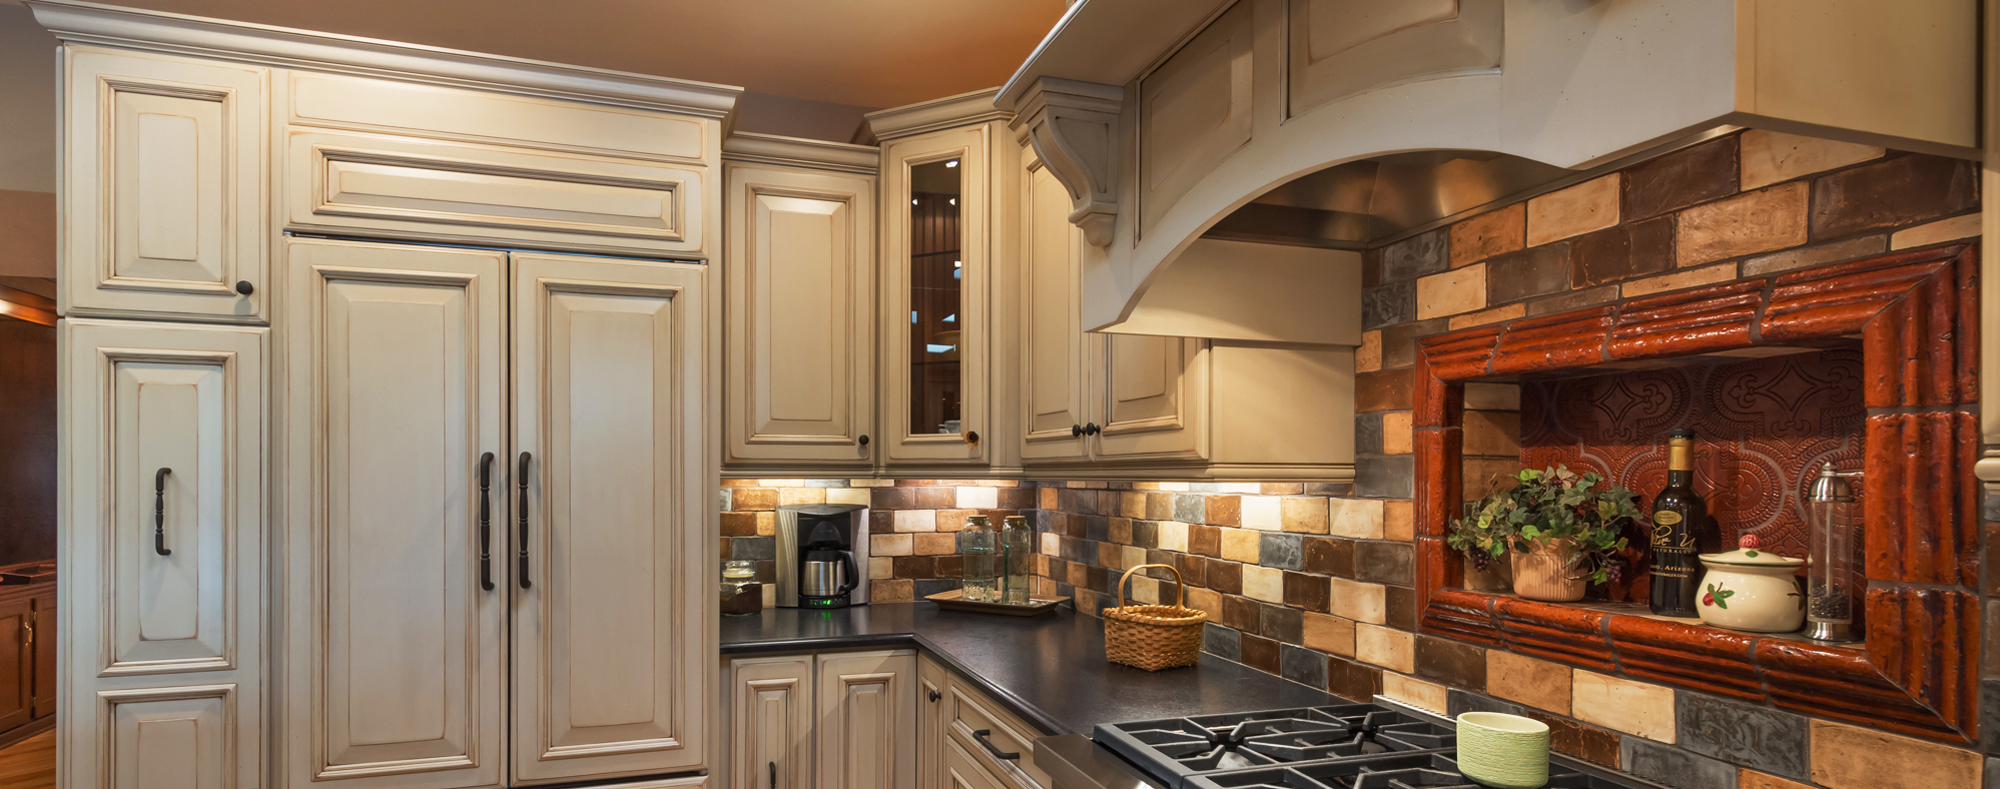 canyoncabinetry kitchen remodeling tucson az Canyon Cabinetry Design is one of Tucson s most respected kitchen and bath remodelers We offer many fine lines of cabinetry